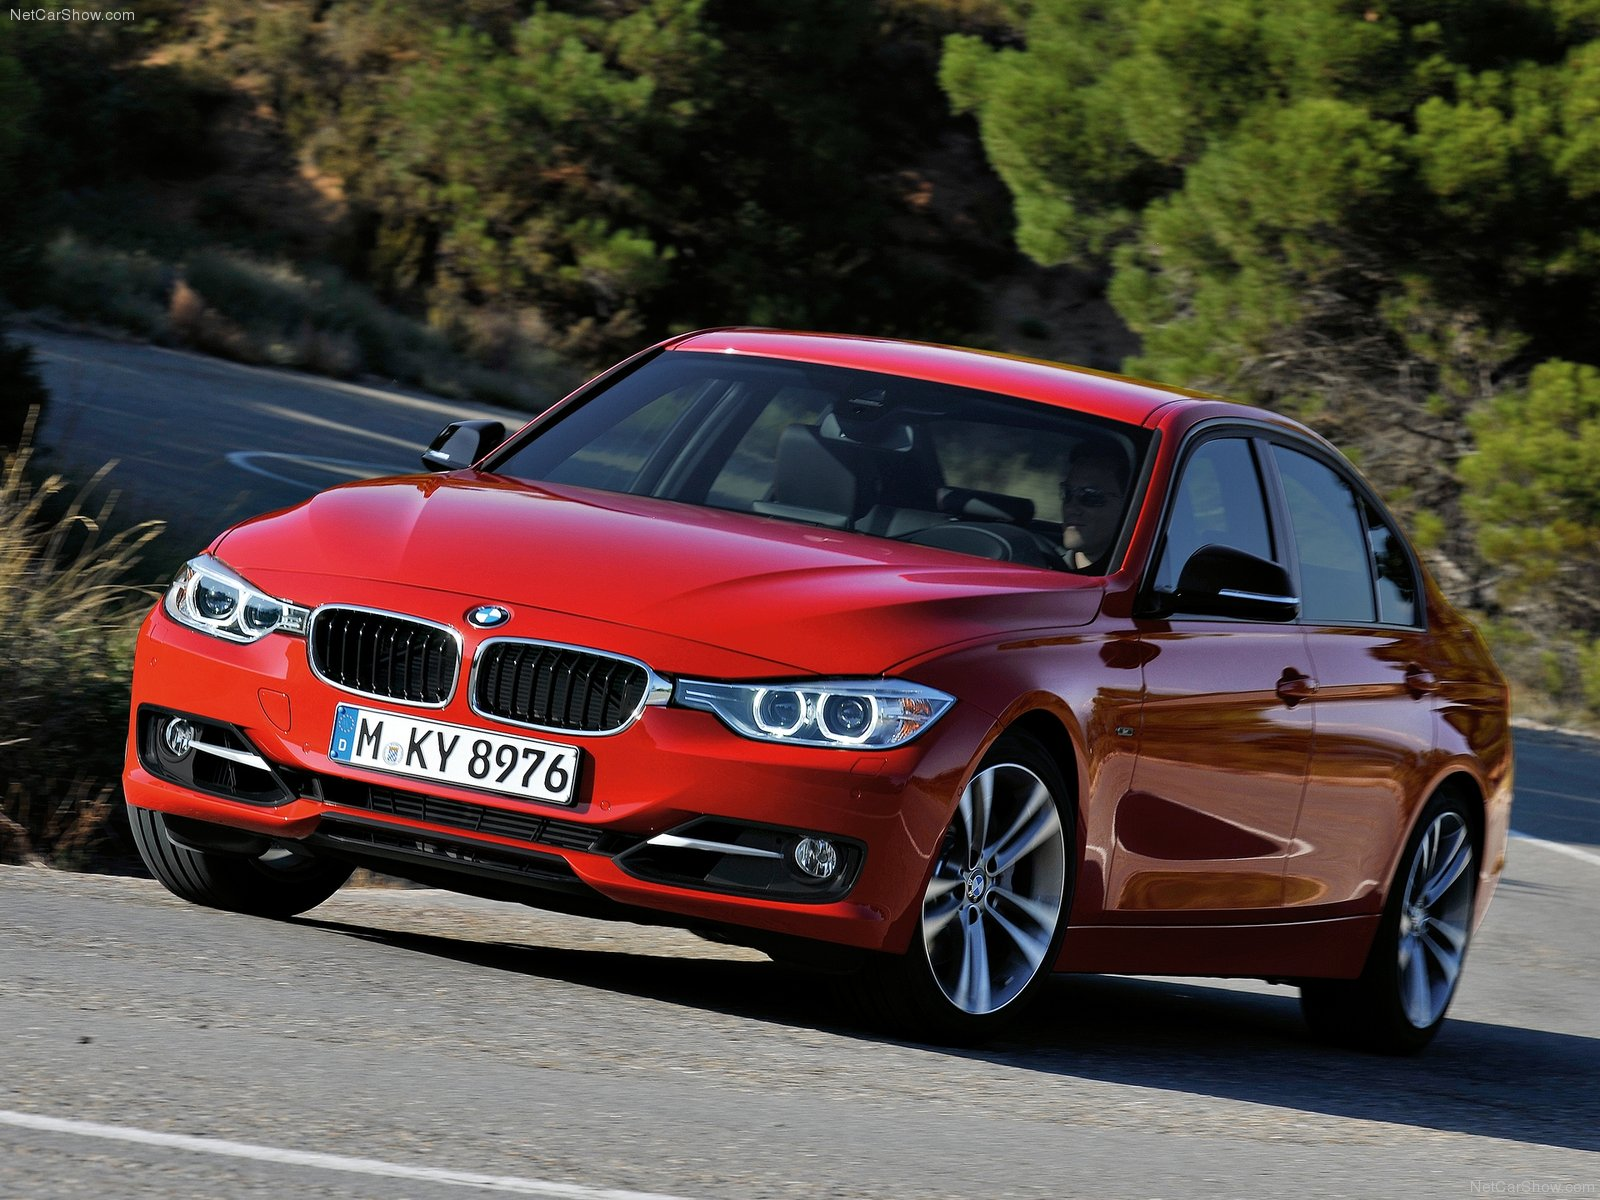 Bmw F30 3 Series Wallpaper 1600x1200 16146